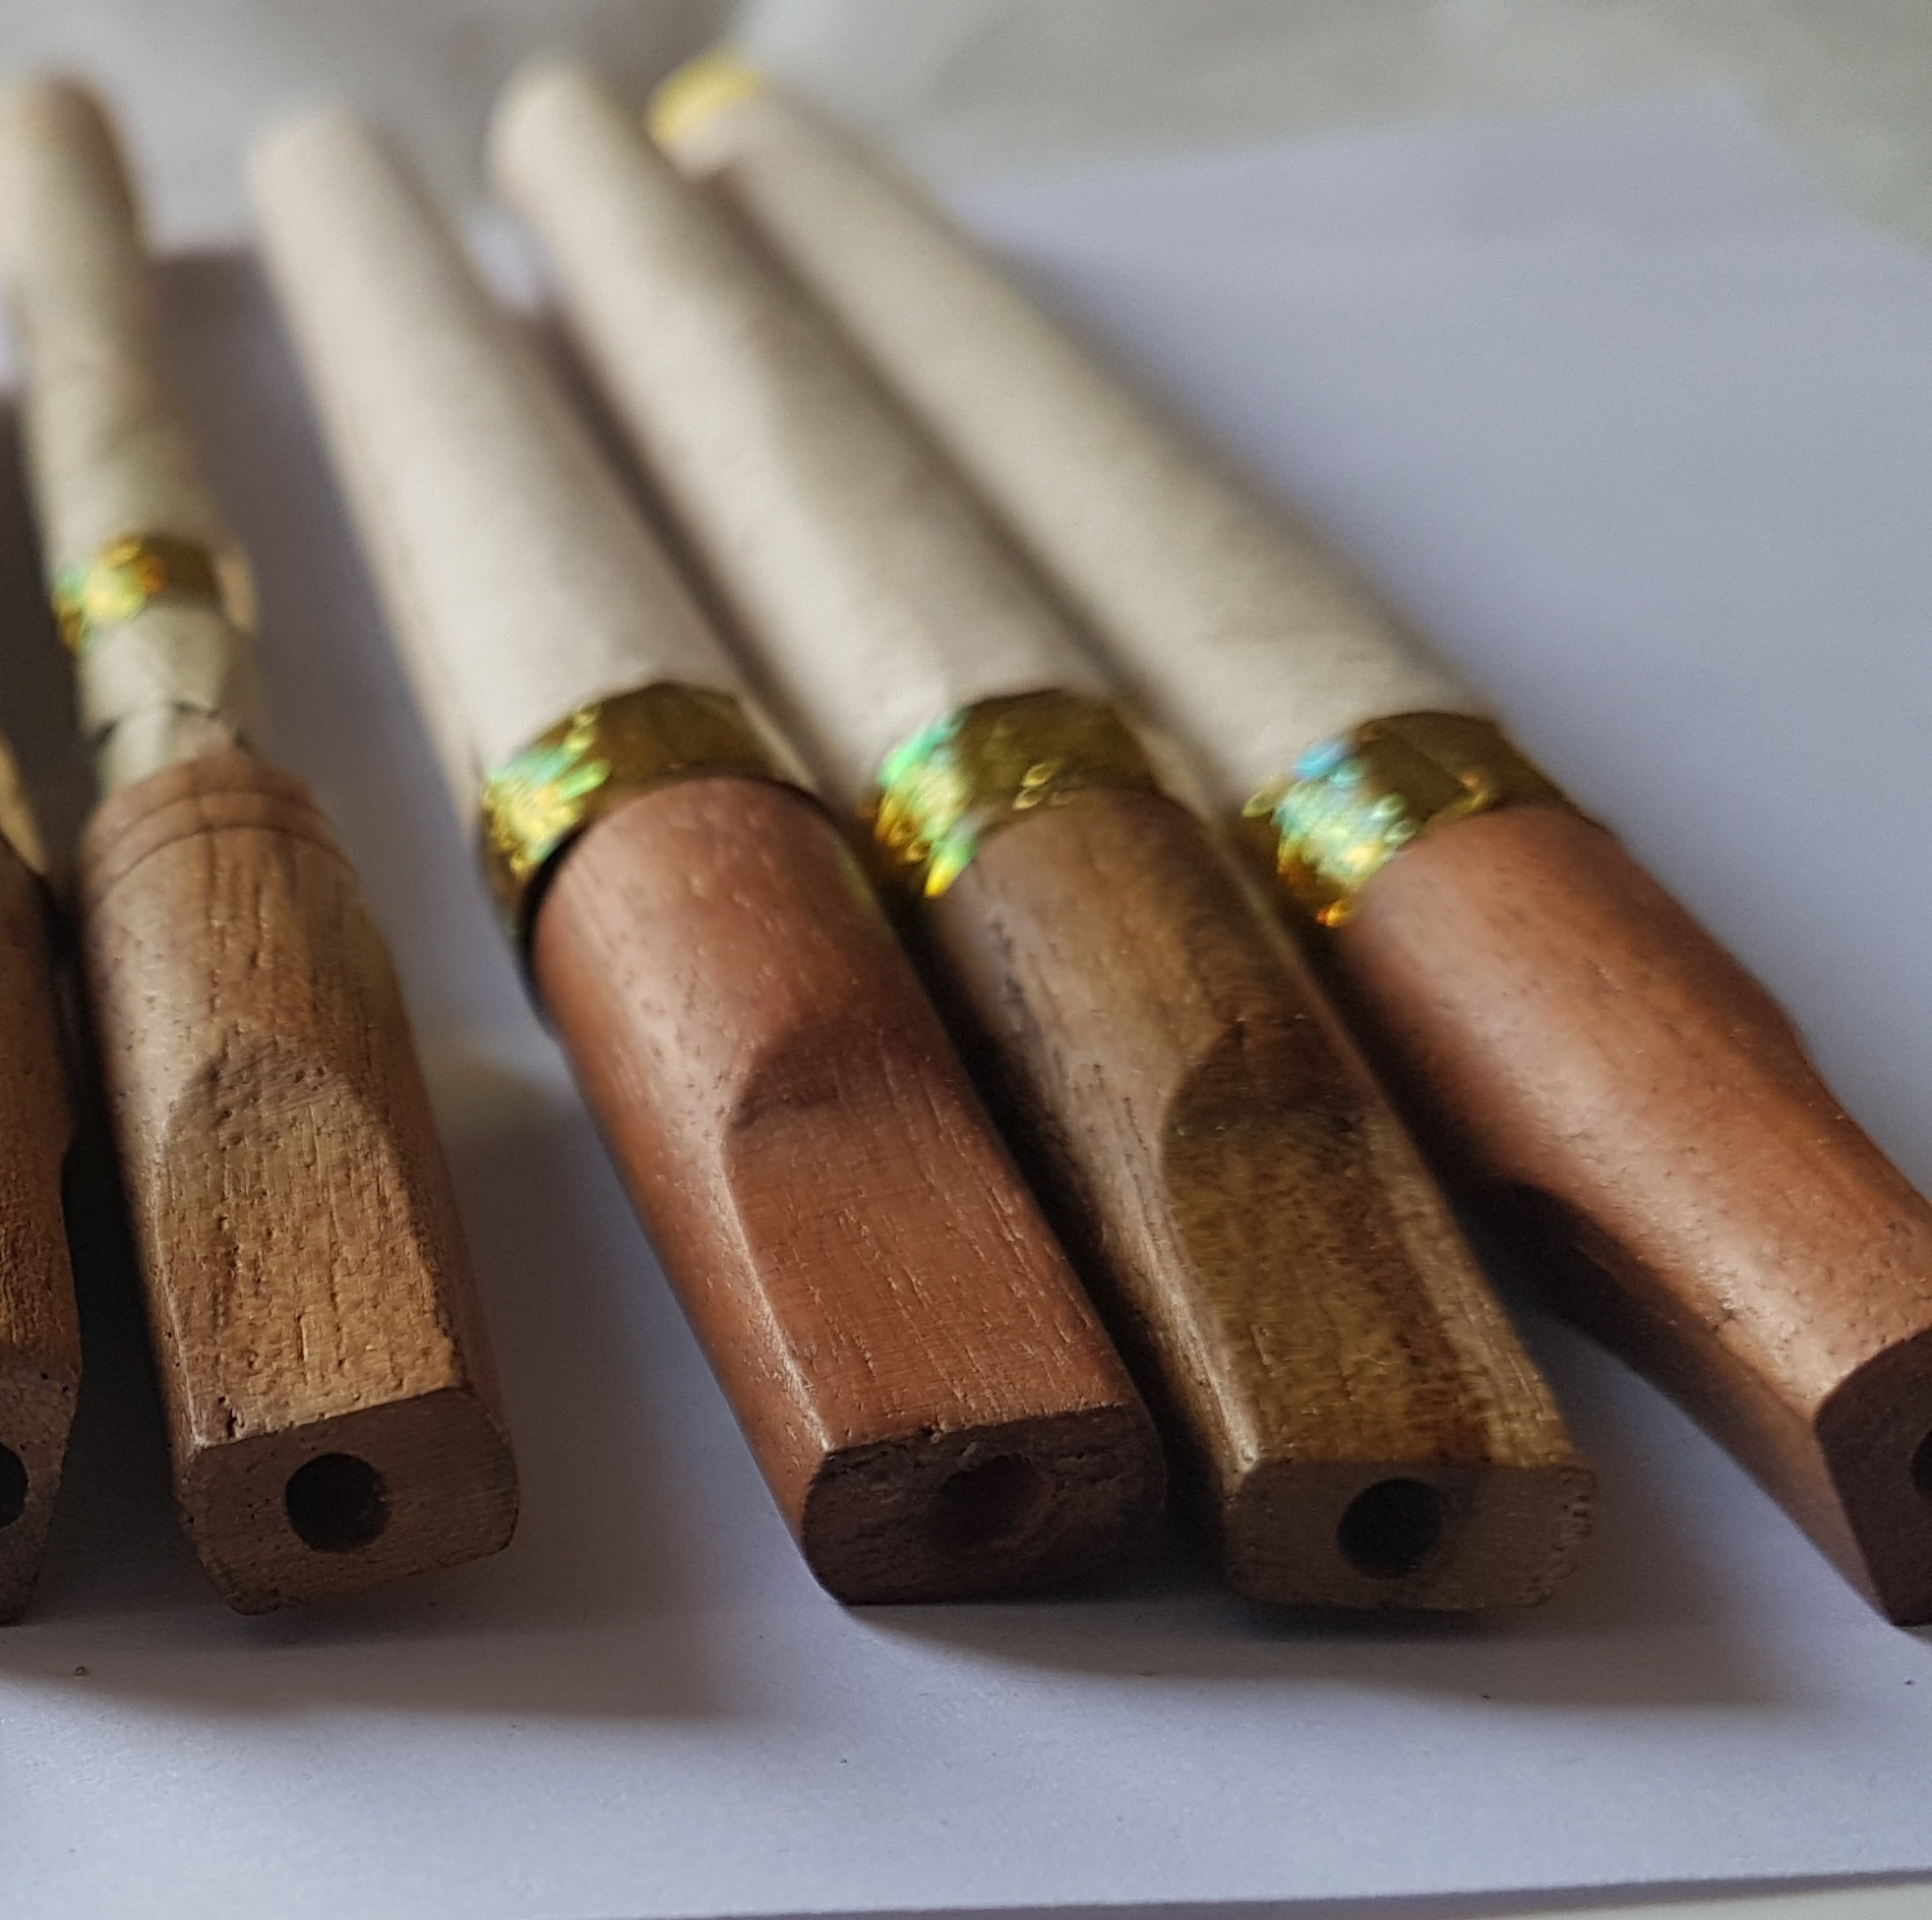 11x38mm Round End Wooden Cigar Tips for Pre Roll Rolled Natural leaf wooden tip, wooden tipped blunts bamboo sticks